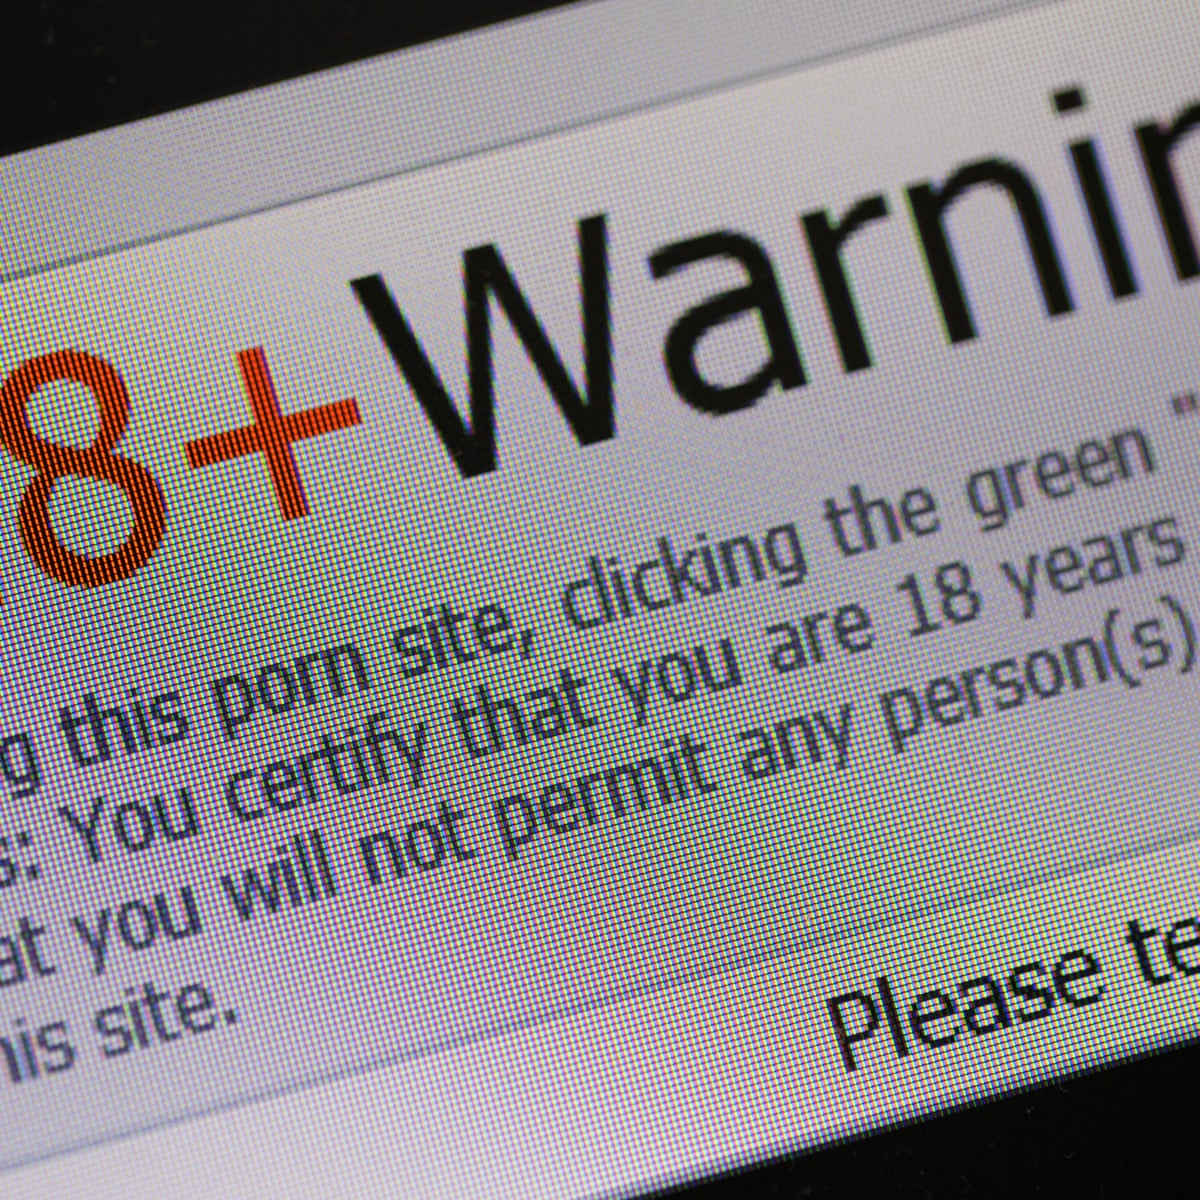 18 Porn Online online pornography age checks to be mandatory in uk from 15